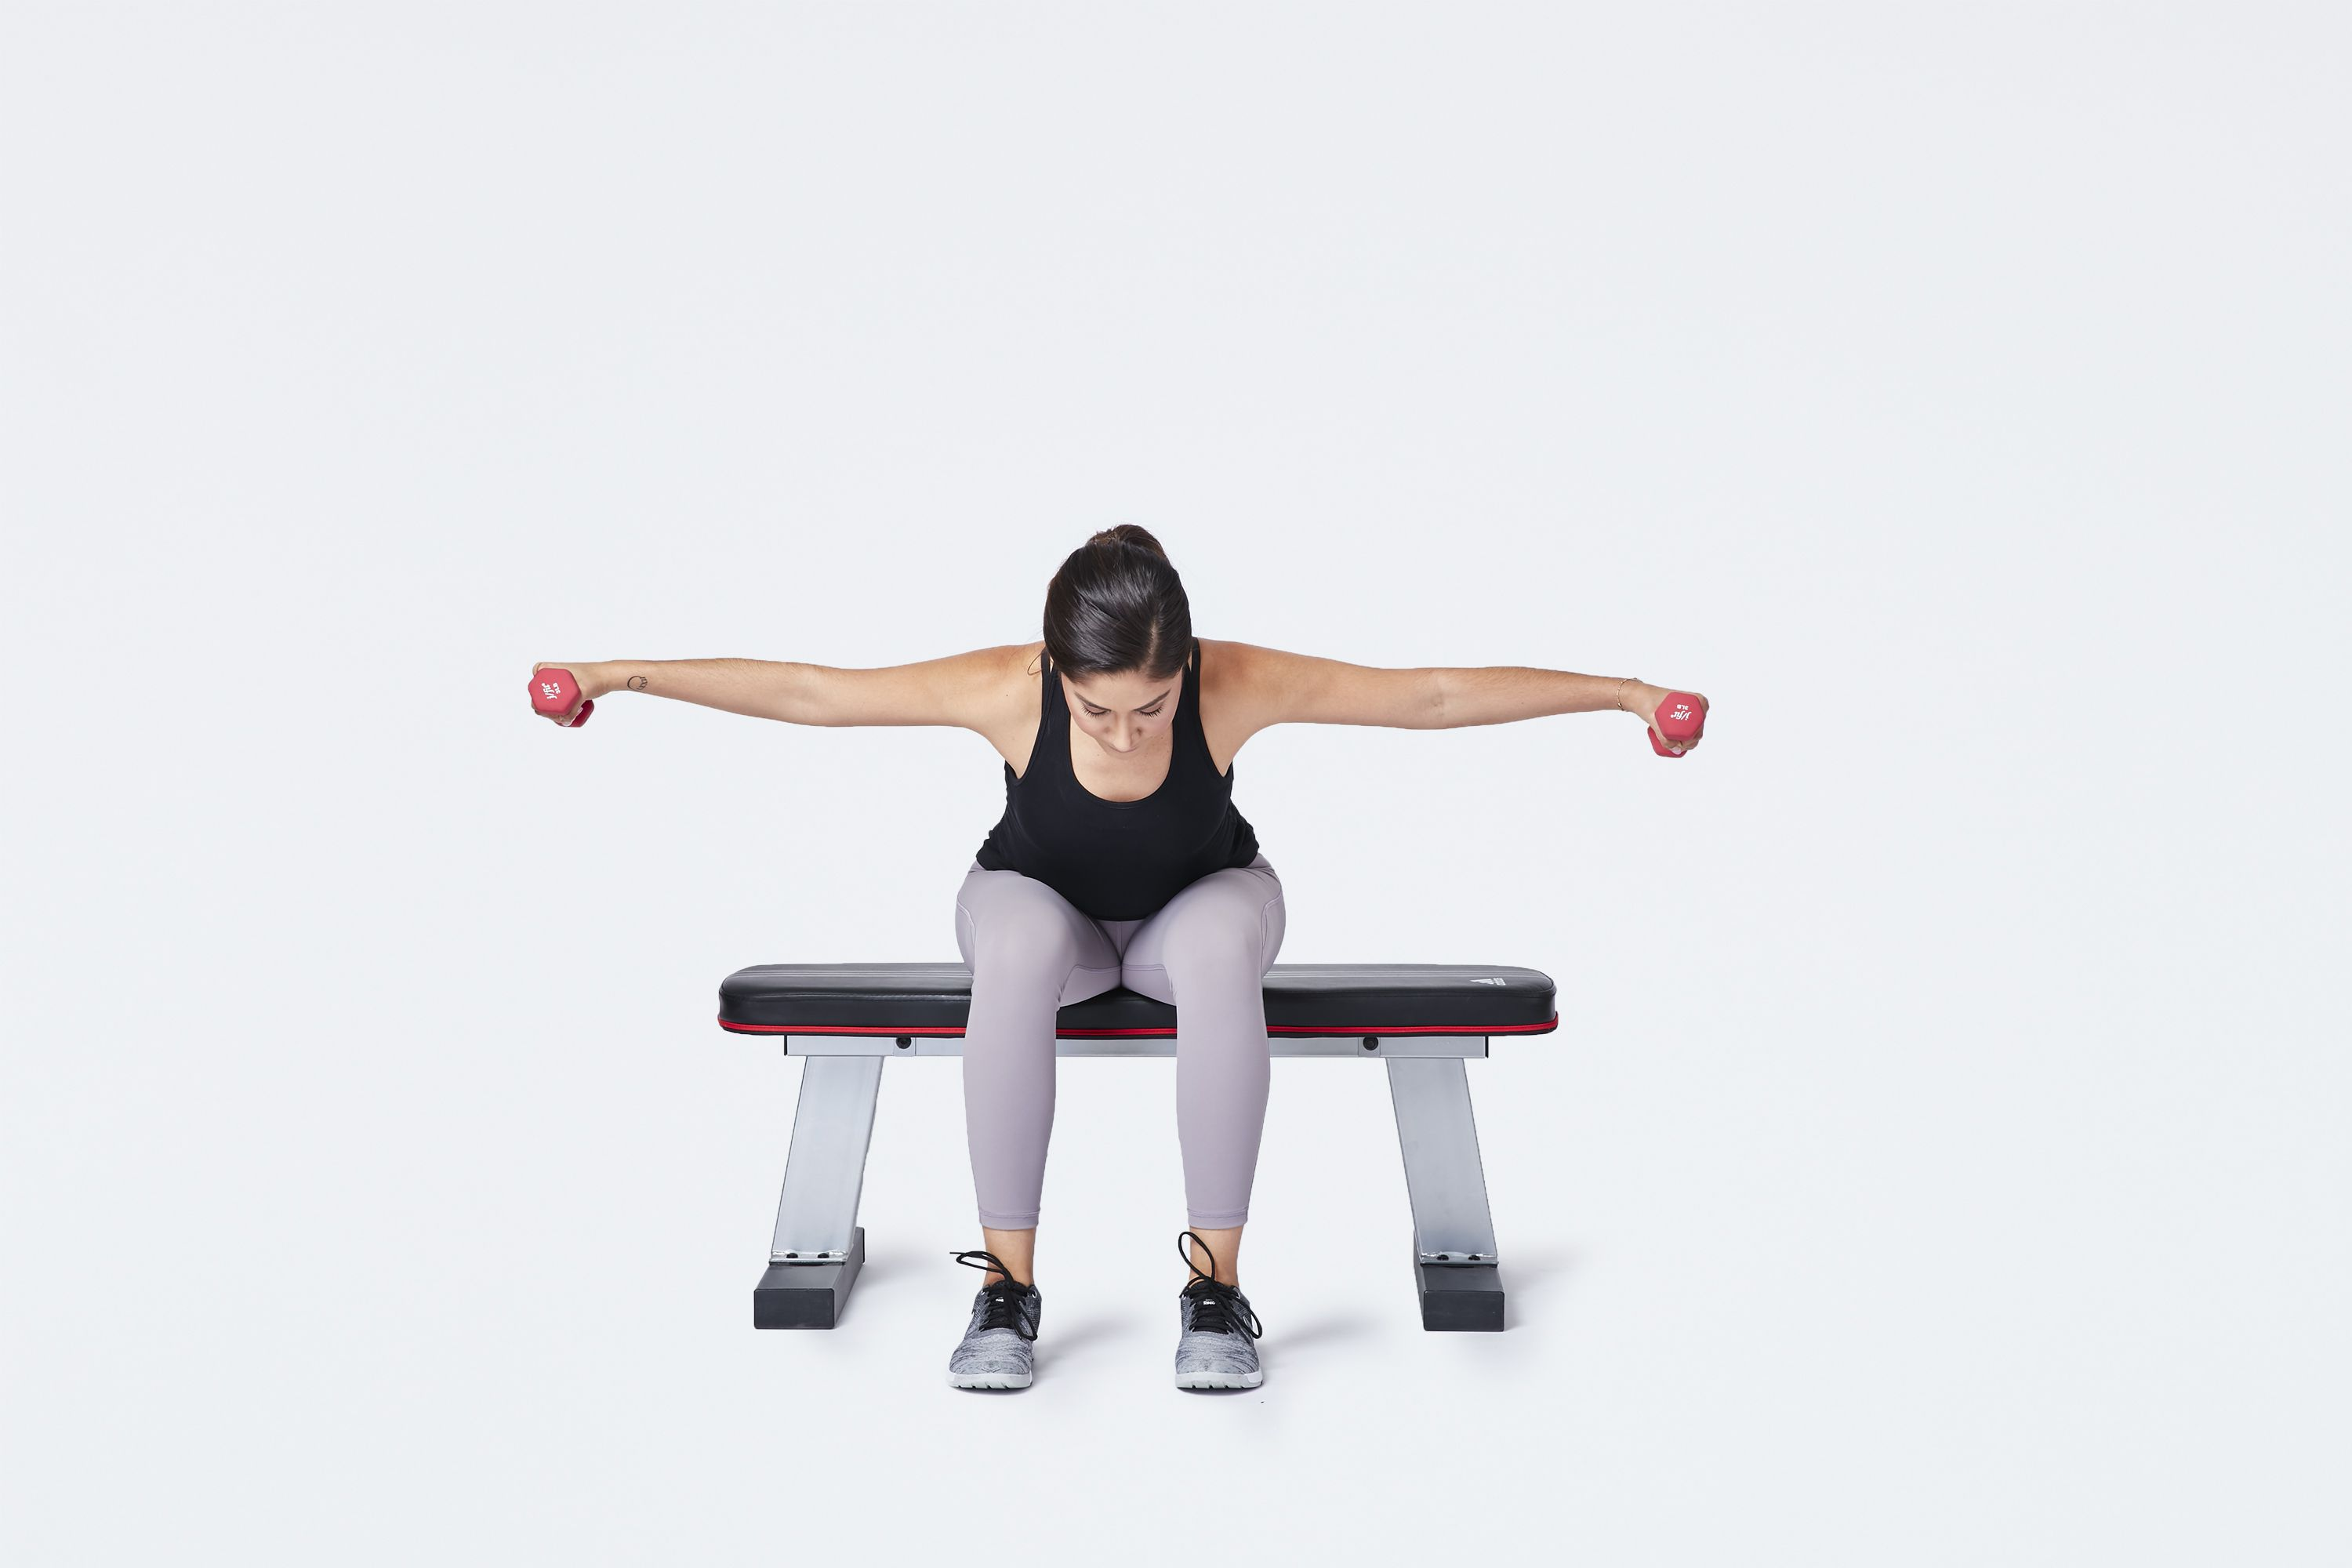 reverse fly exercise move